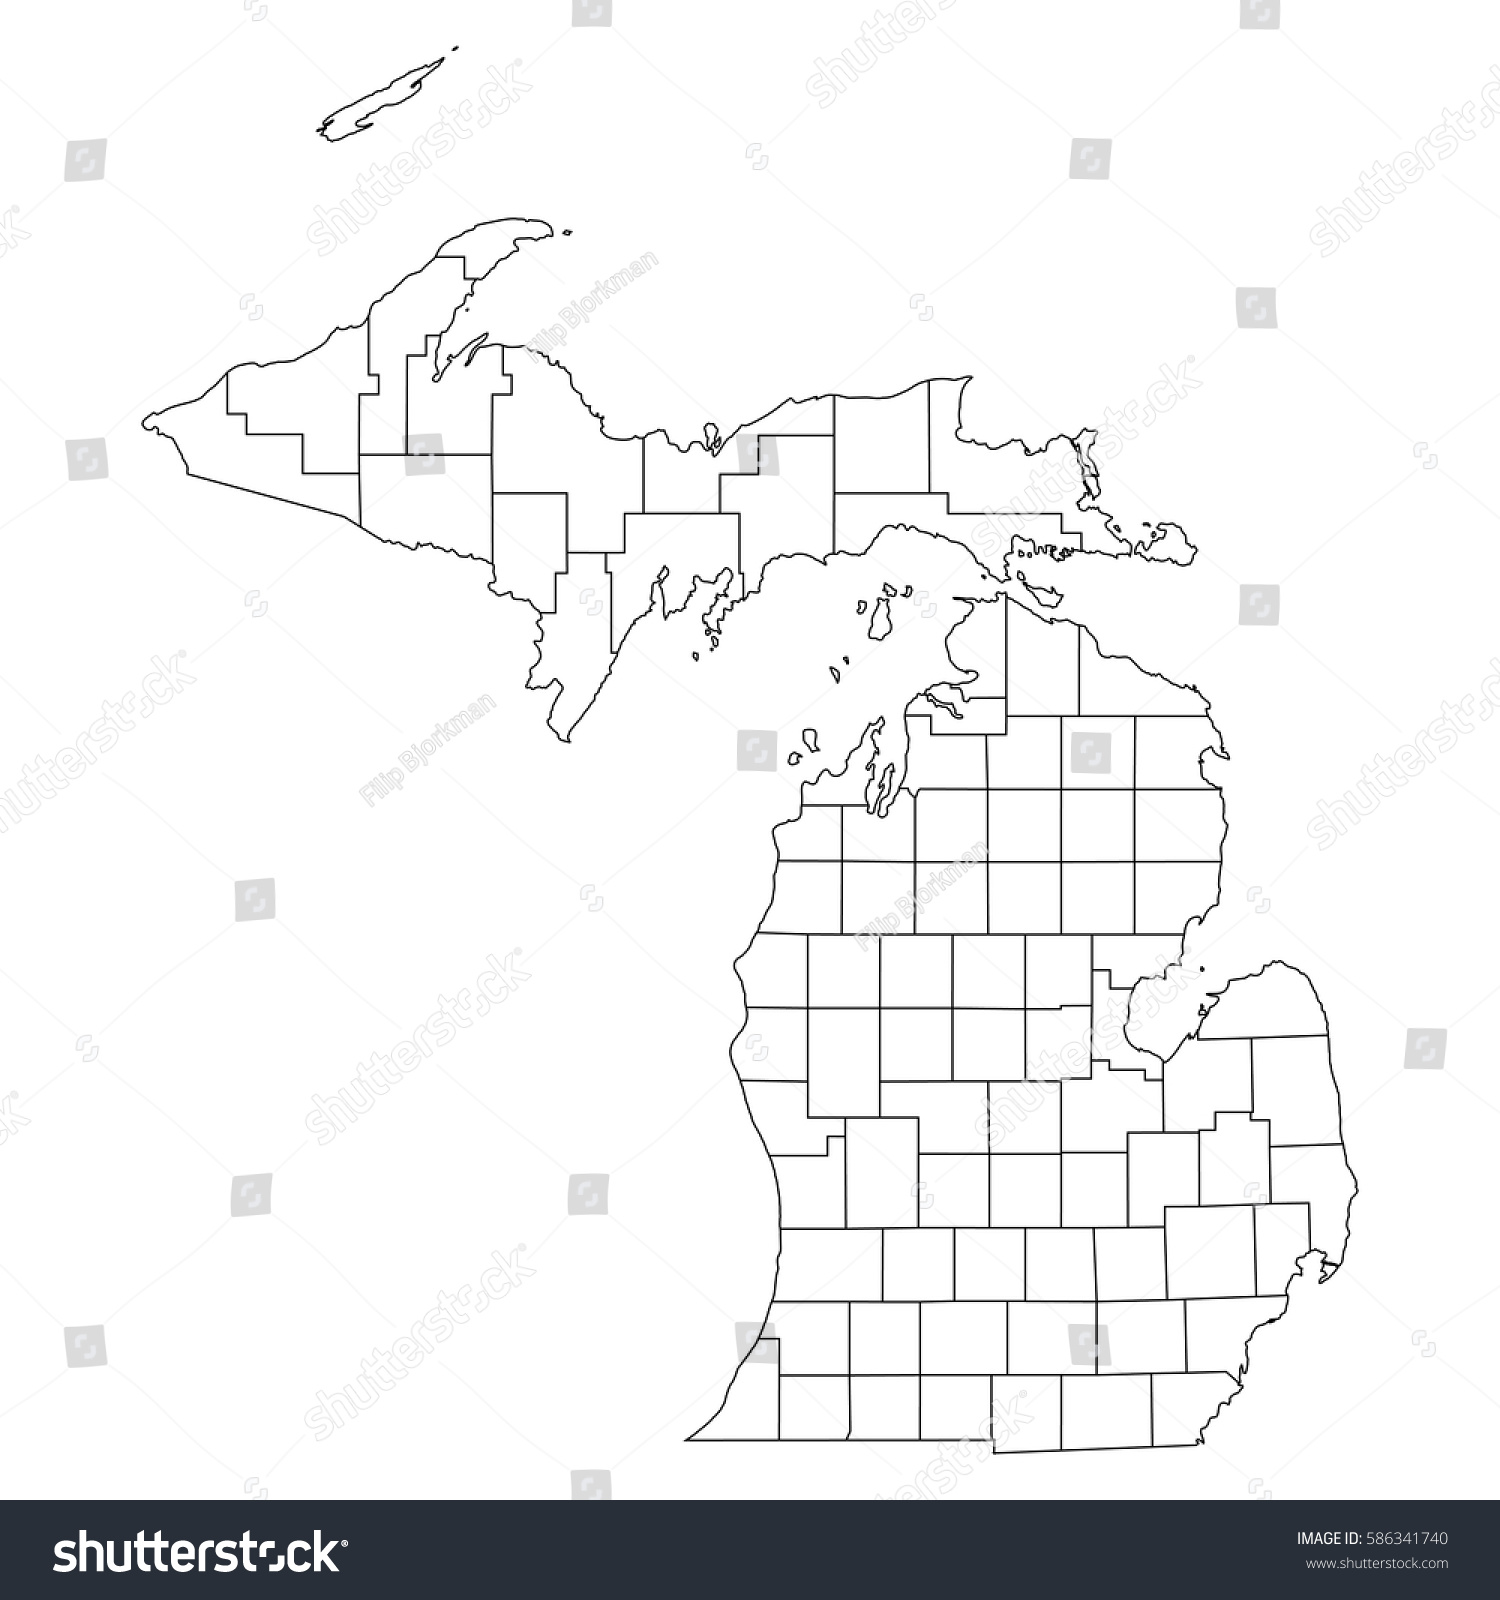 Map Of Counties In Michigan Blank Map Usa - Michigan map of counties